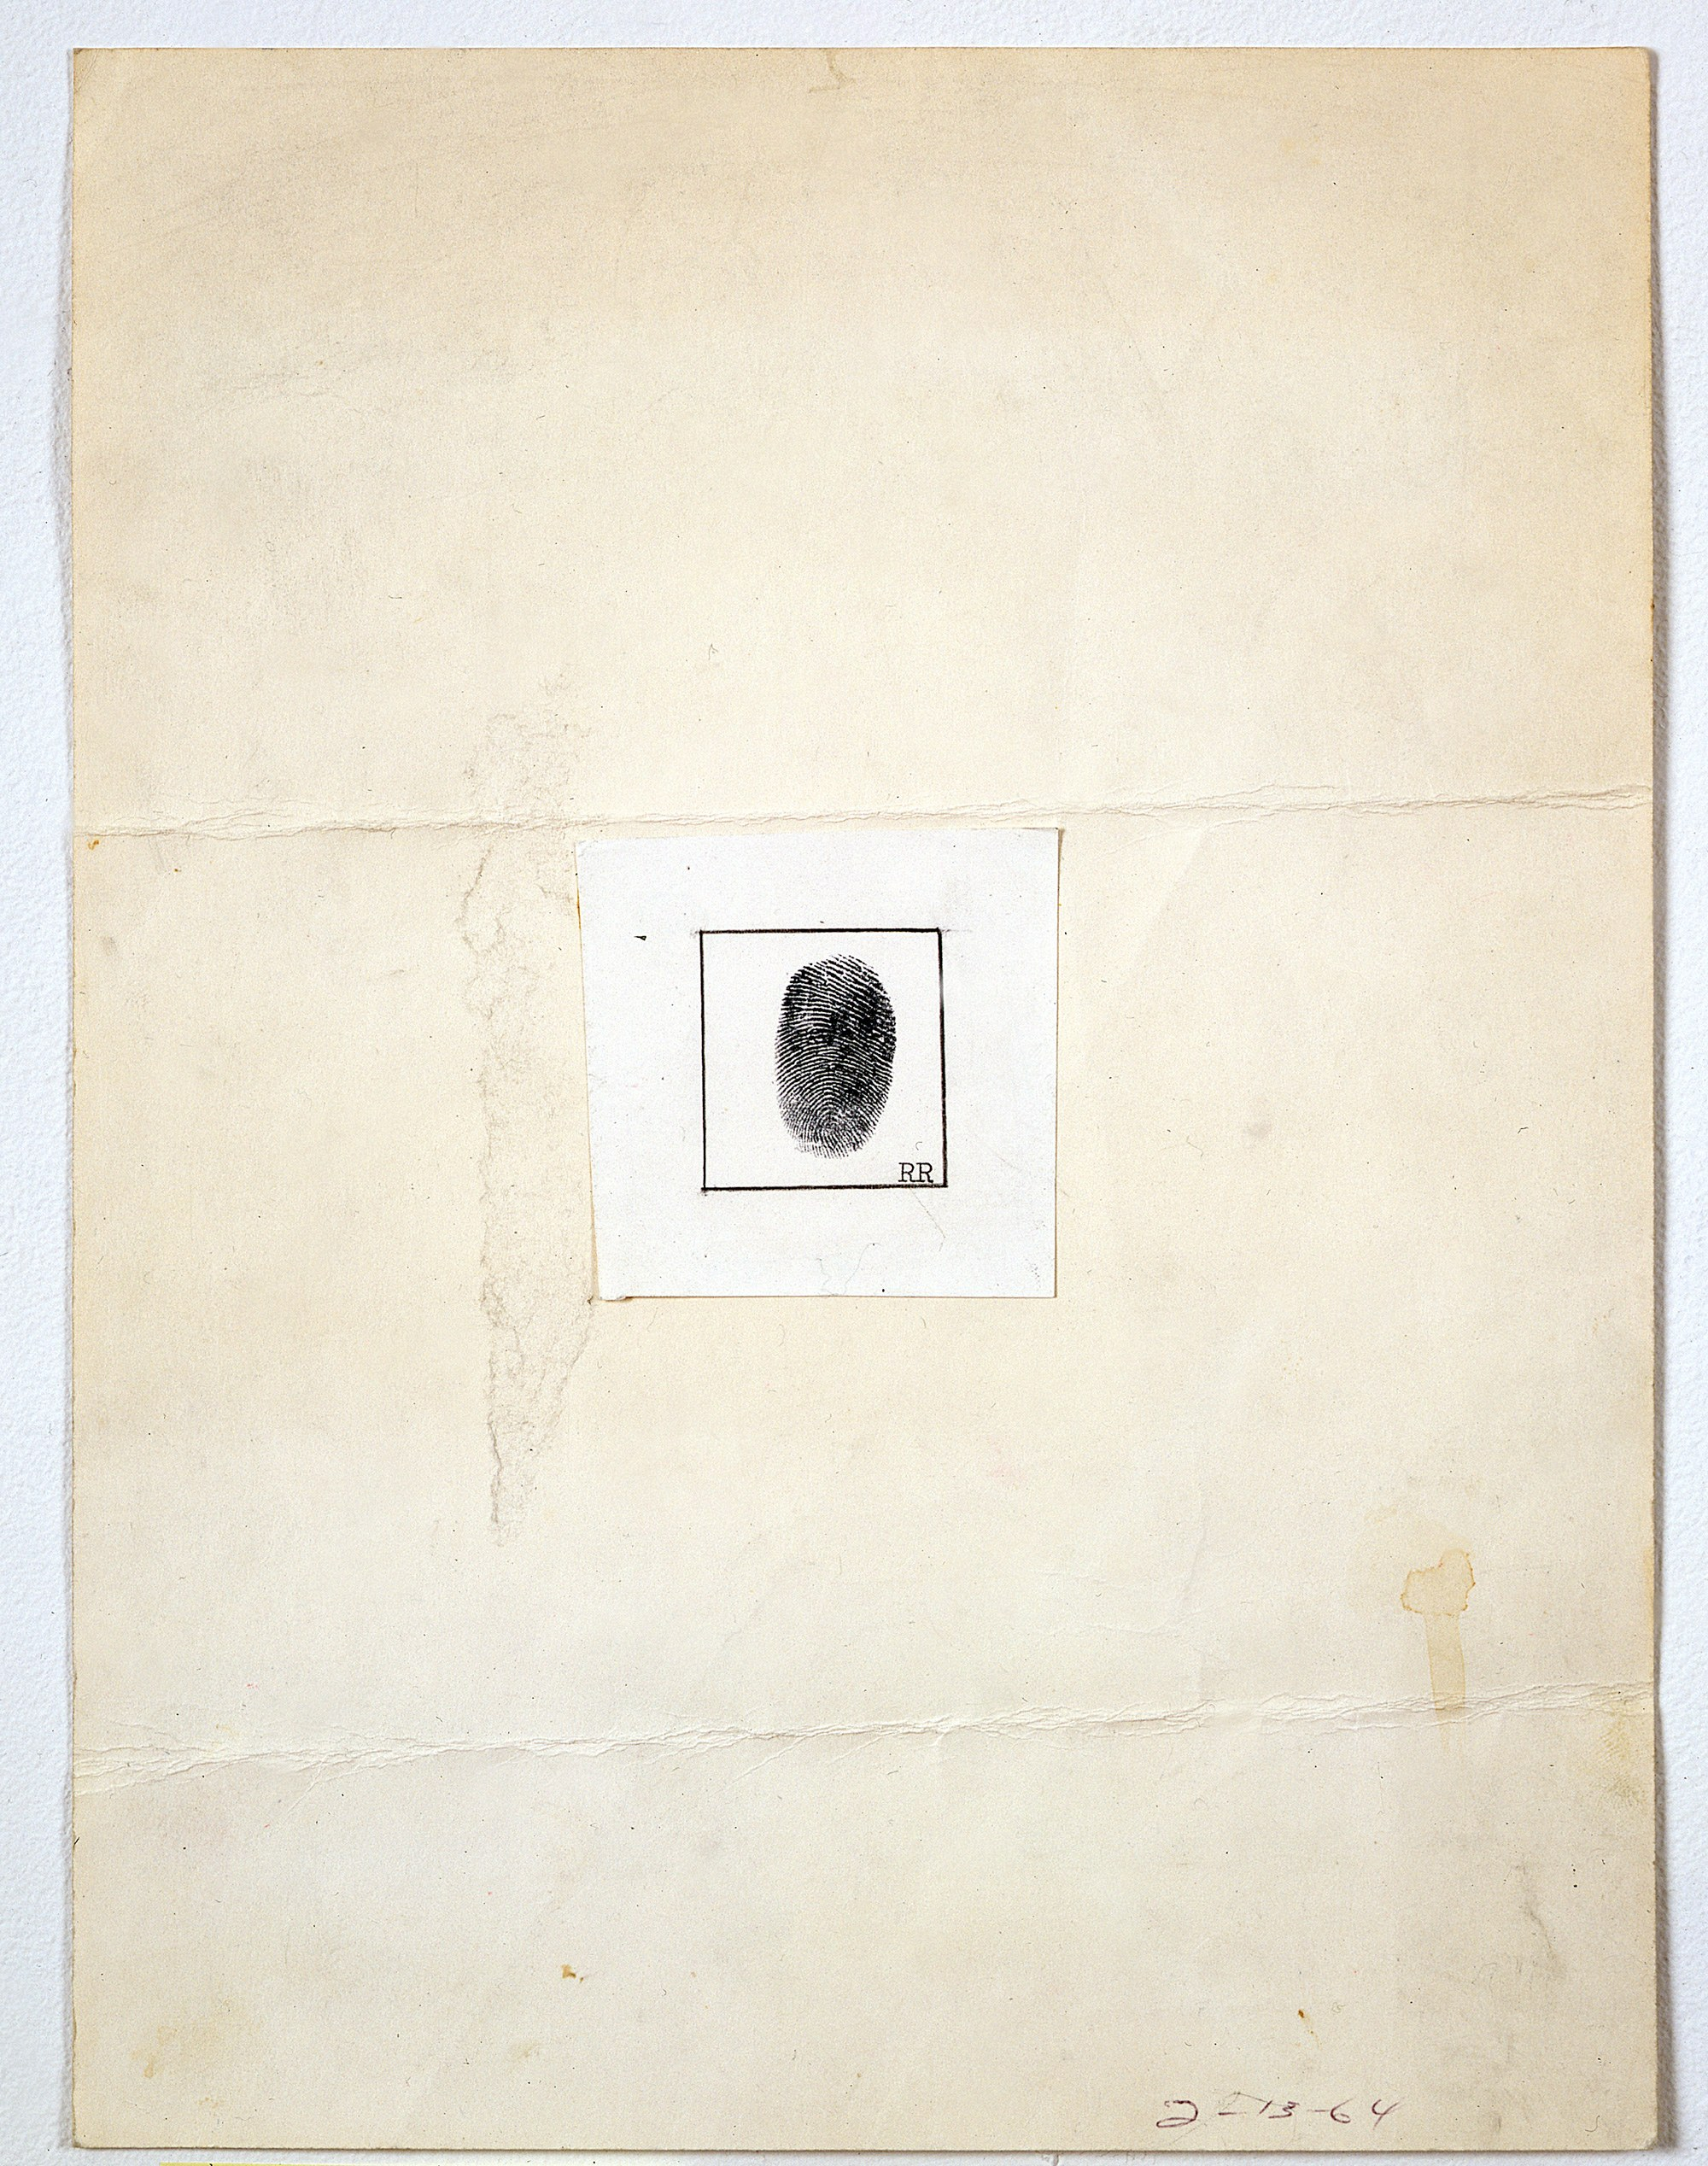 Robert Rauschenberg,  Self-Portrait (For the New Yorker Profile),  1964, ink and graphite on paper, (30 x 23 cm).